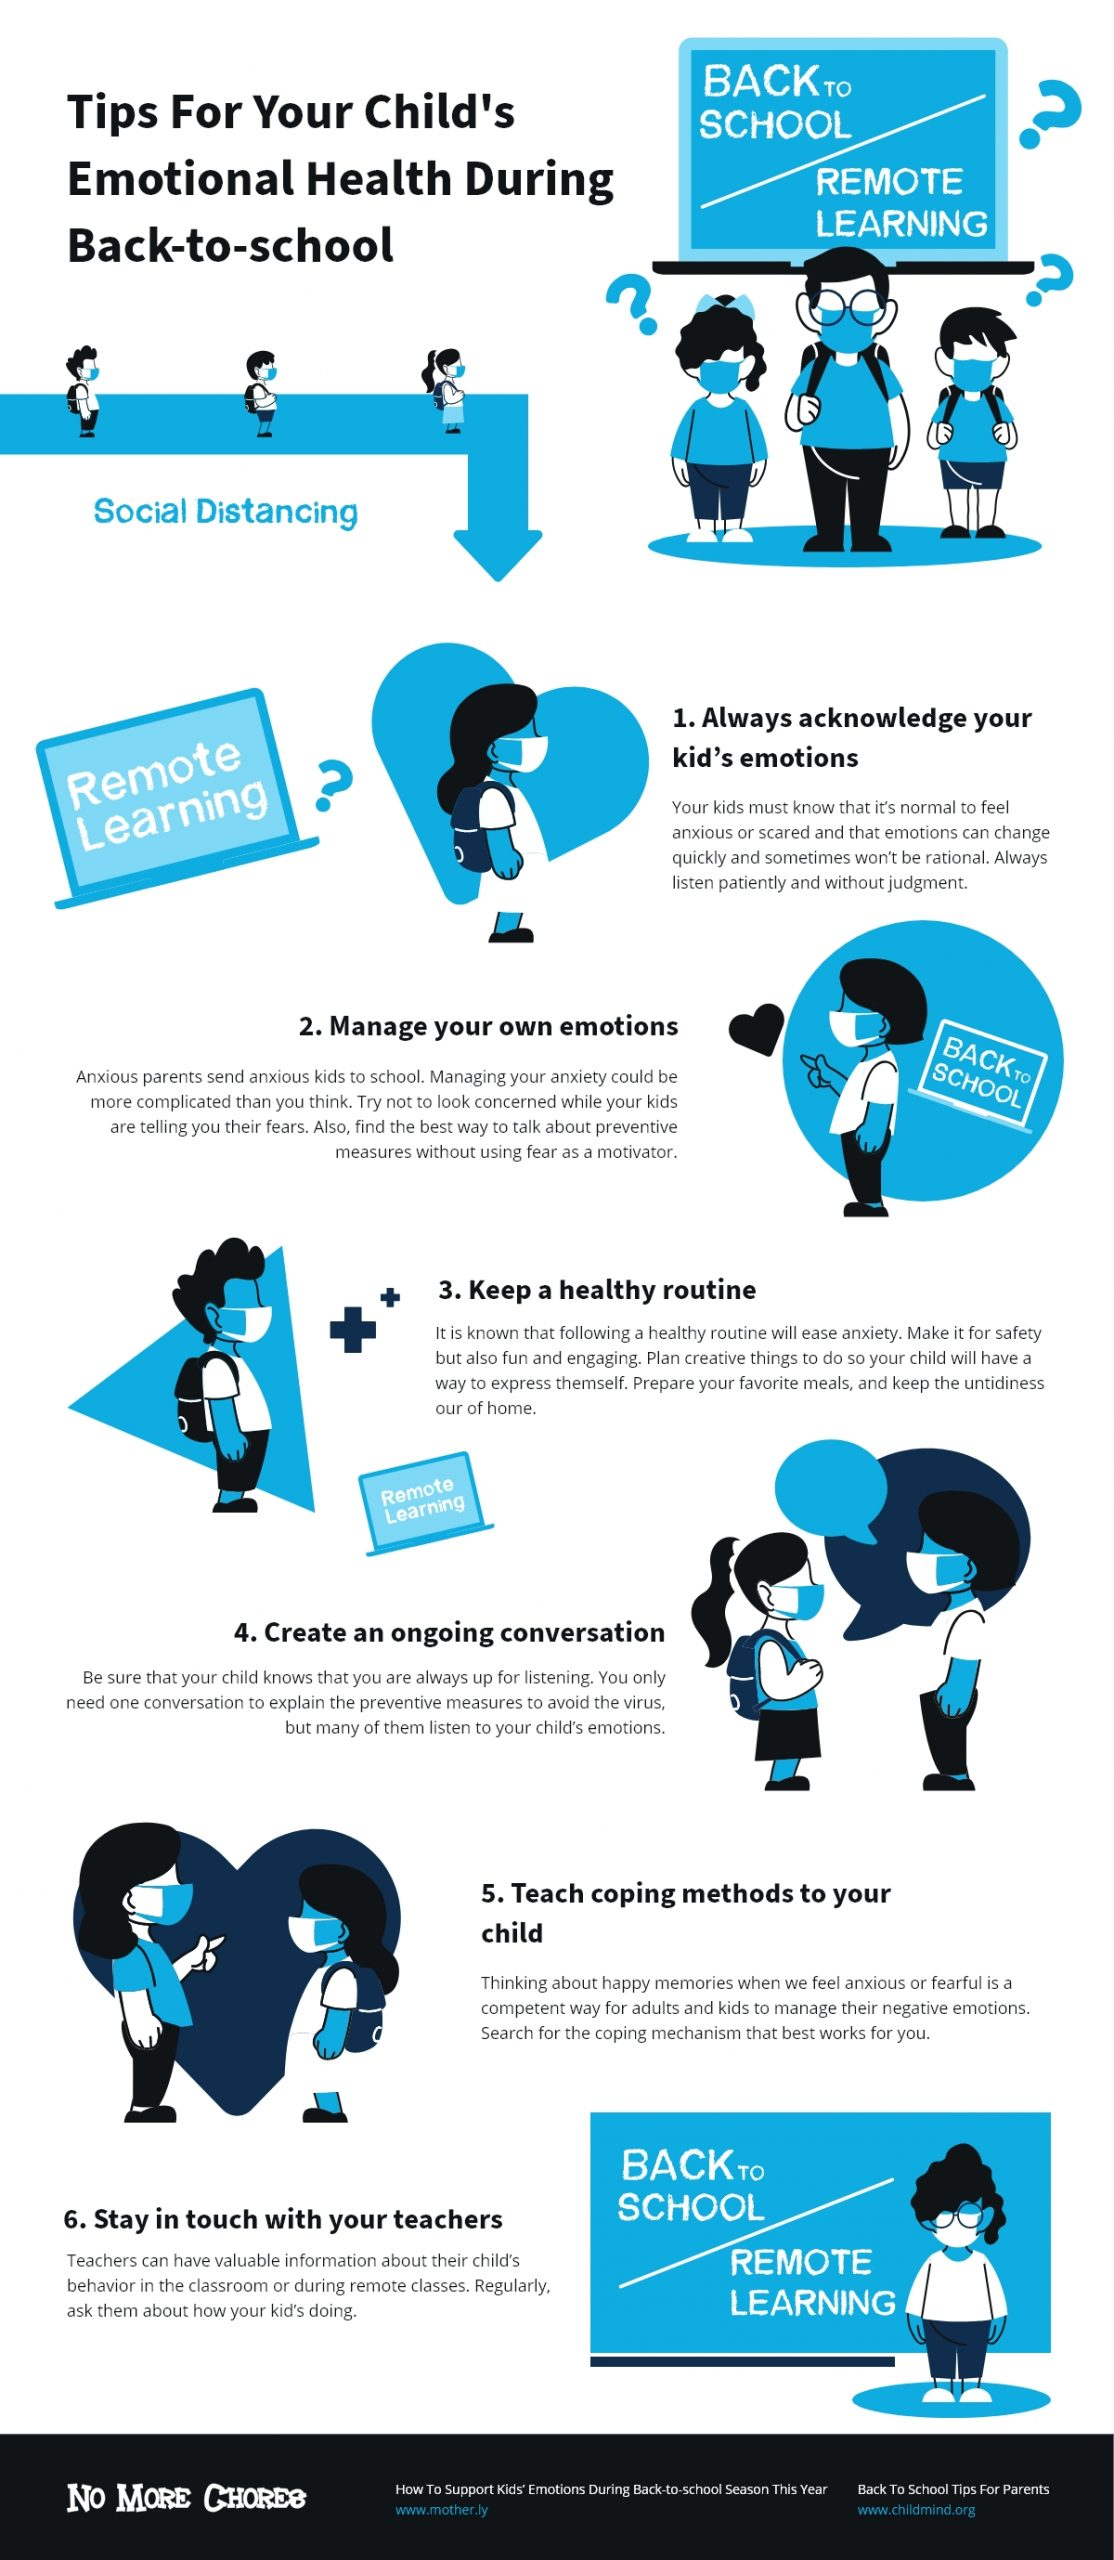 Tips for Child's emotional health during back to school